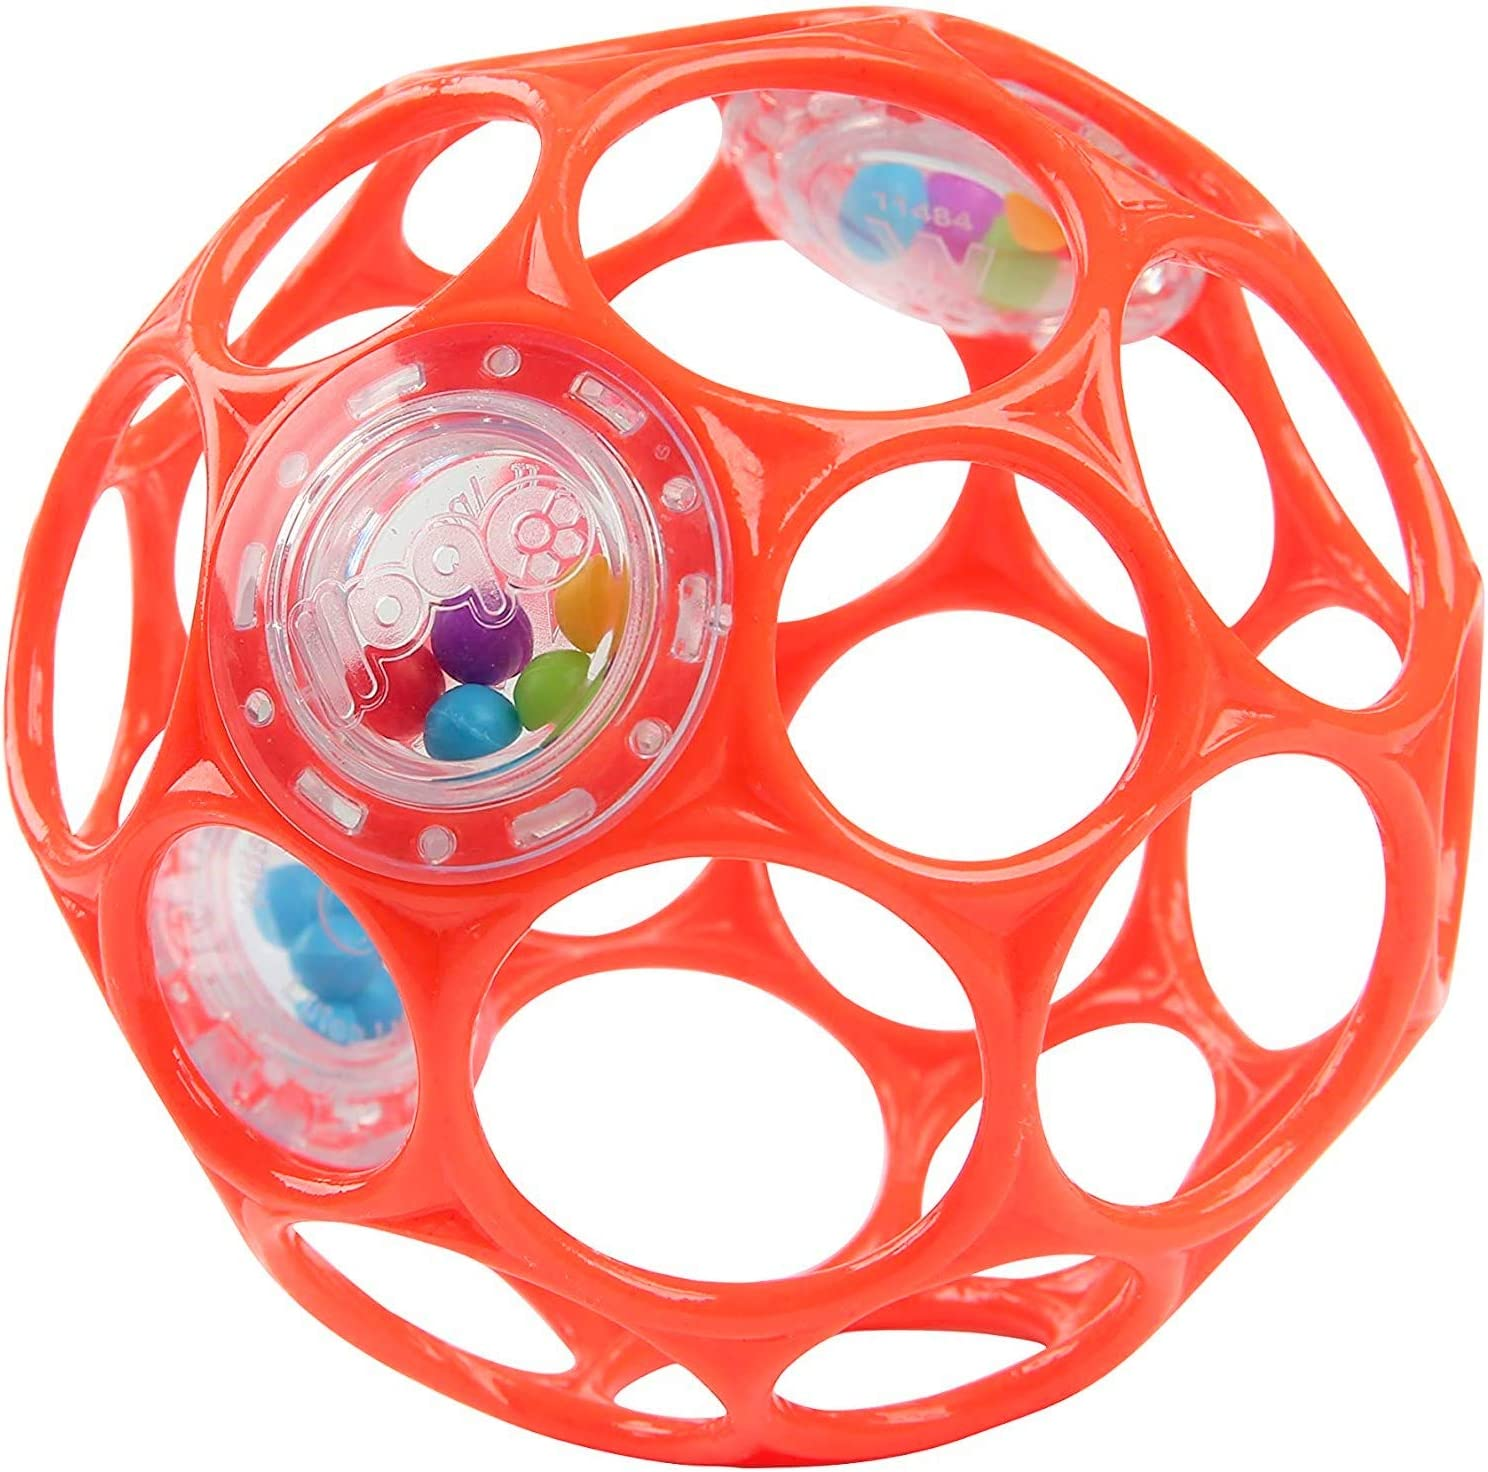 4 Inch Red Ages Newborn + Bright Starts Oball Rattle Easy Grasp Toy